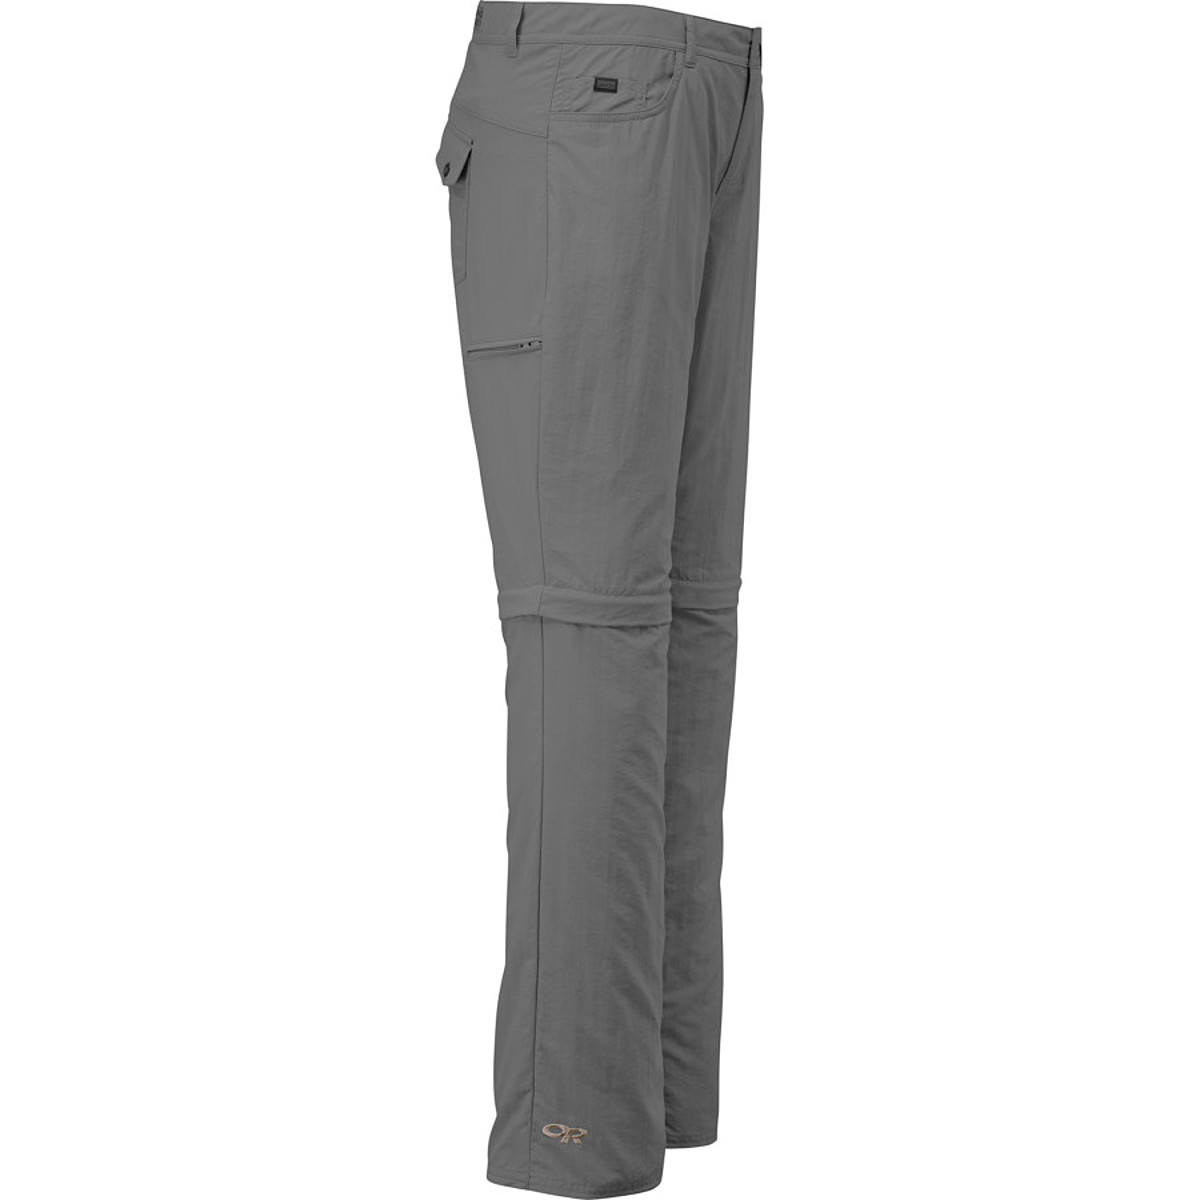 Outdoor Research Treadway Convert Pants